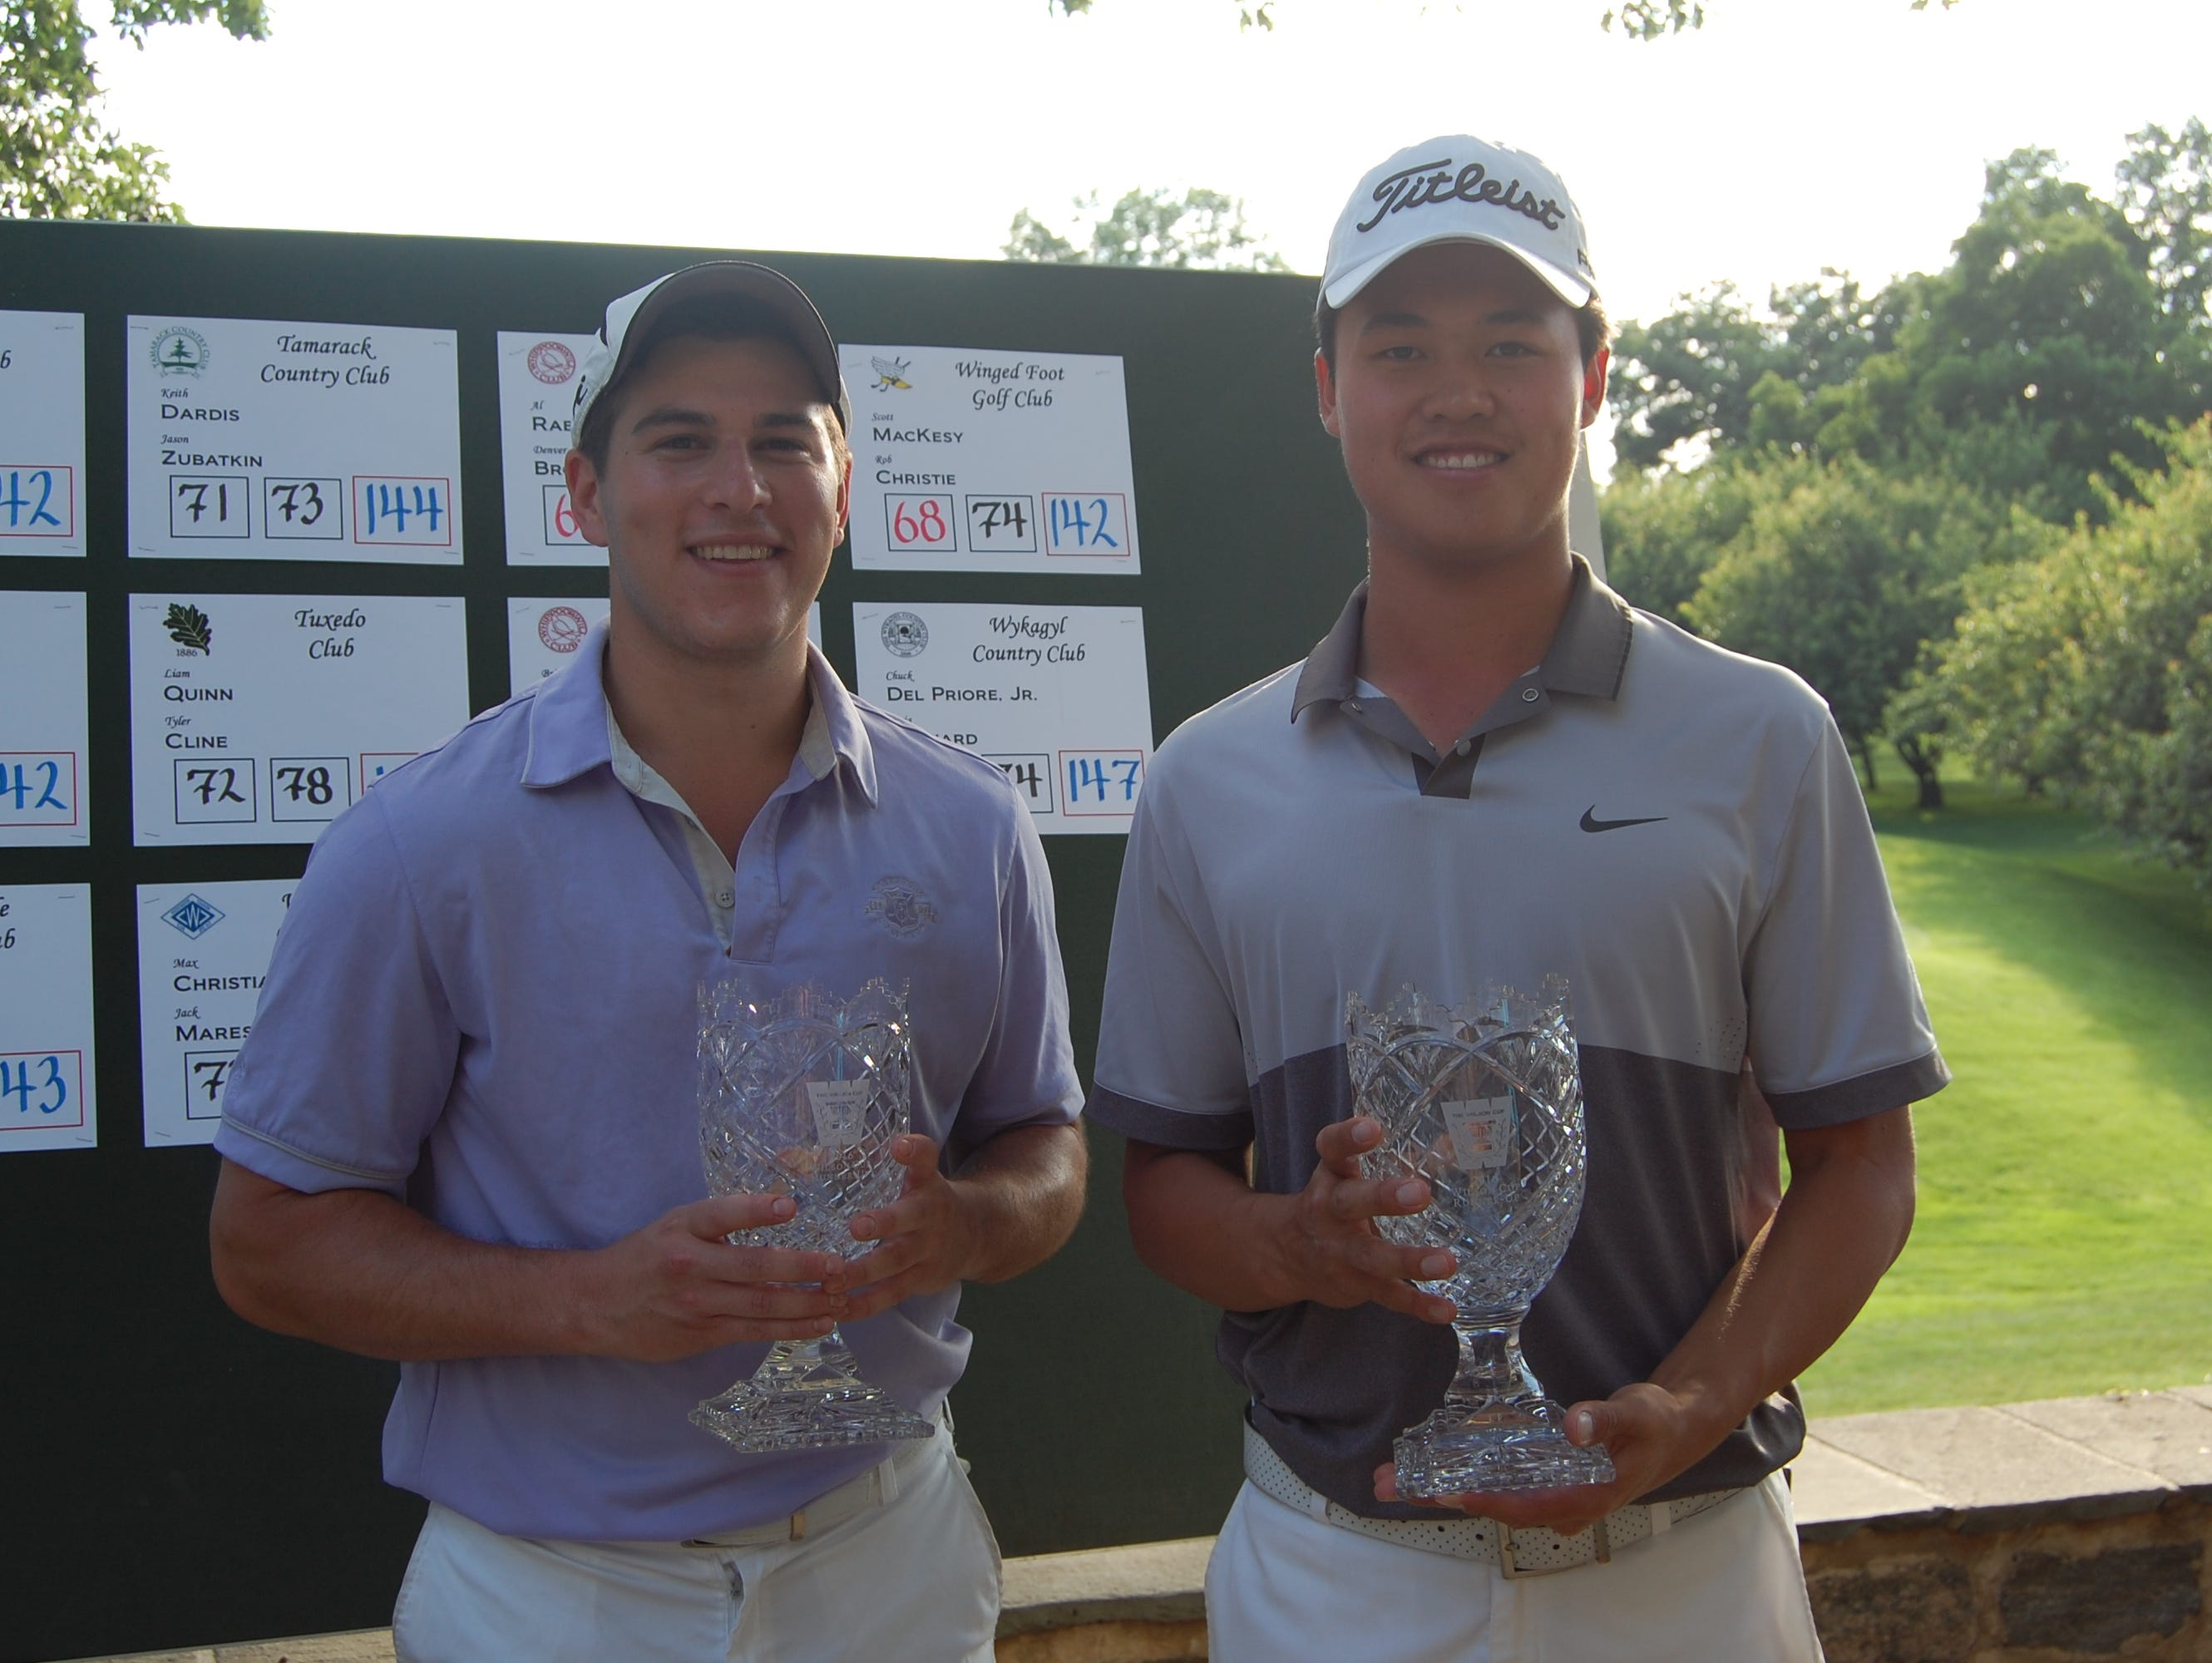 Peter Friedman and Brandon Wu of Scarsdale Golf Club took second place in the Wilson Cup, playin together for the first time in the morning round.